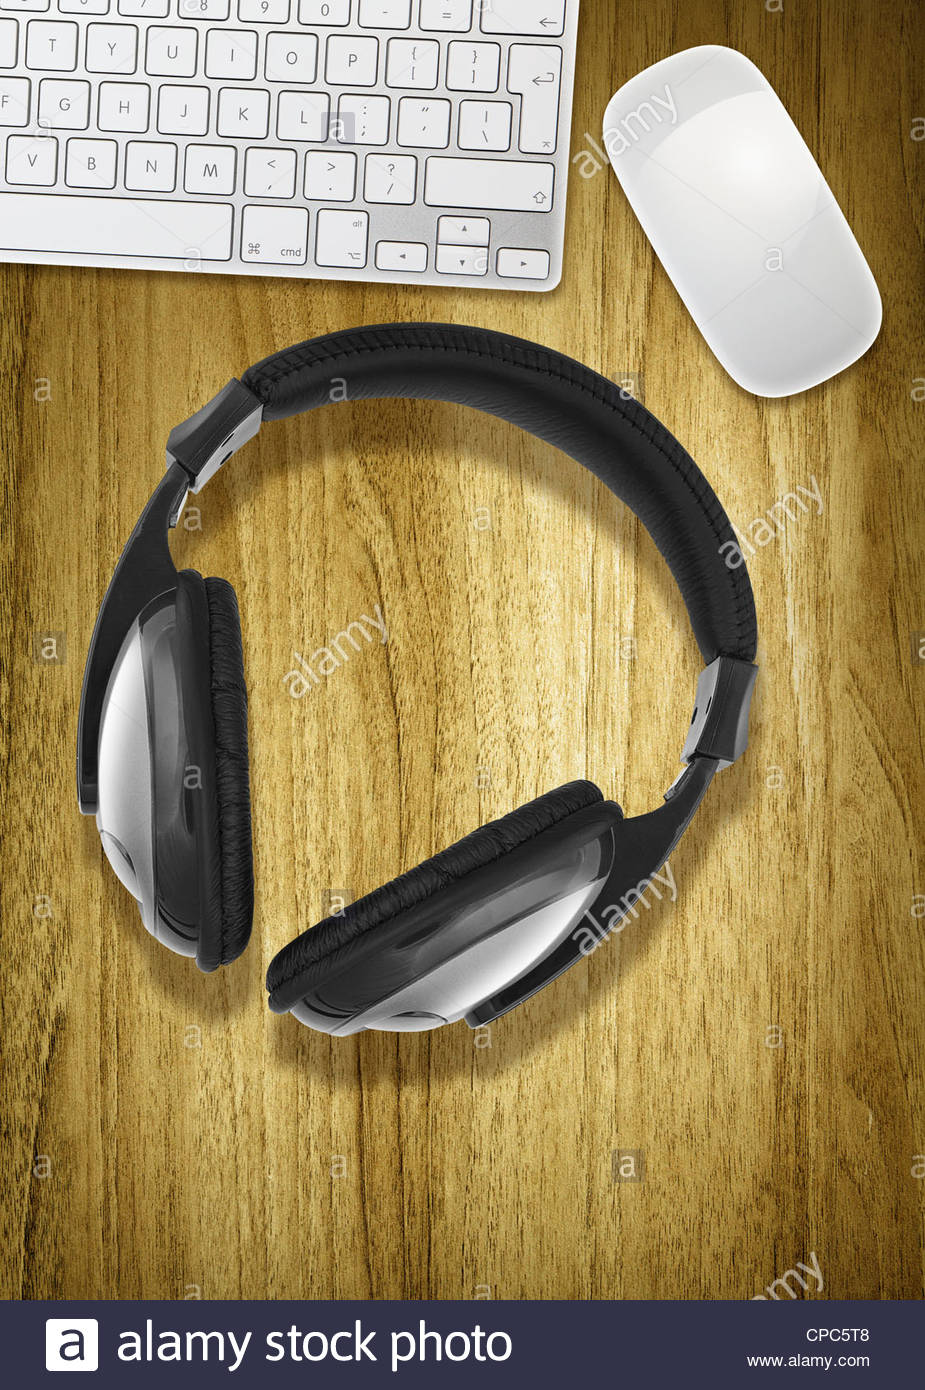 headphones and computer - Stock Image